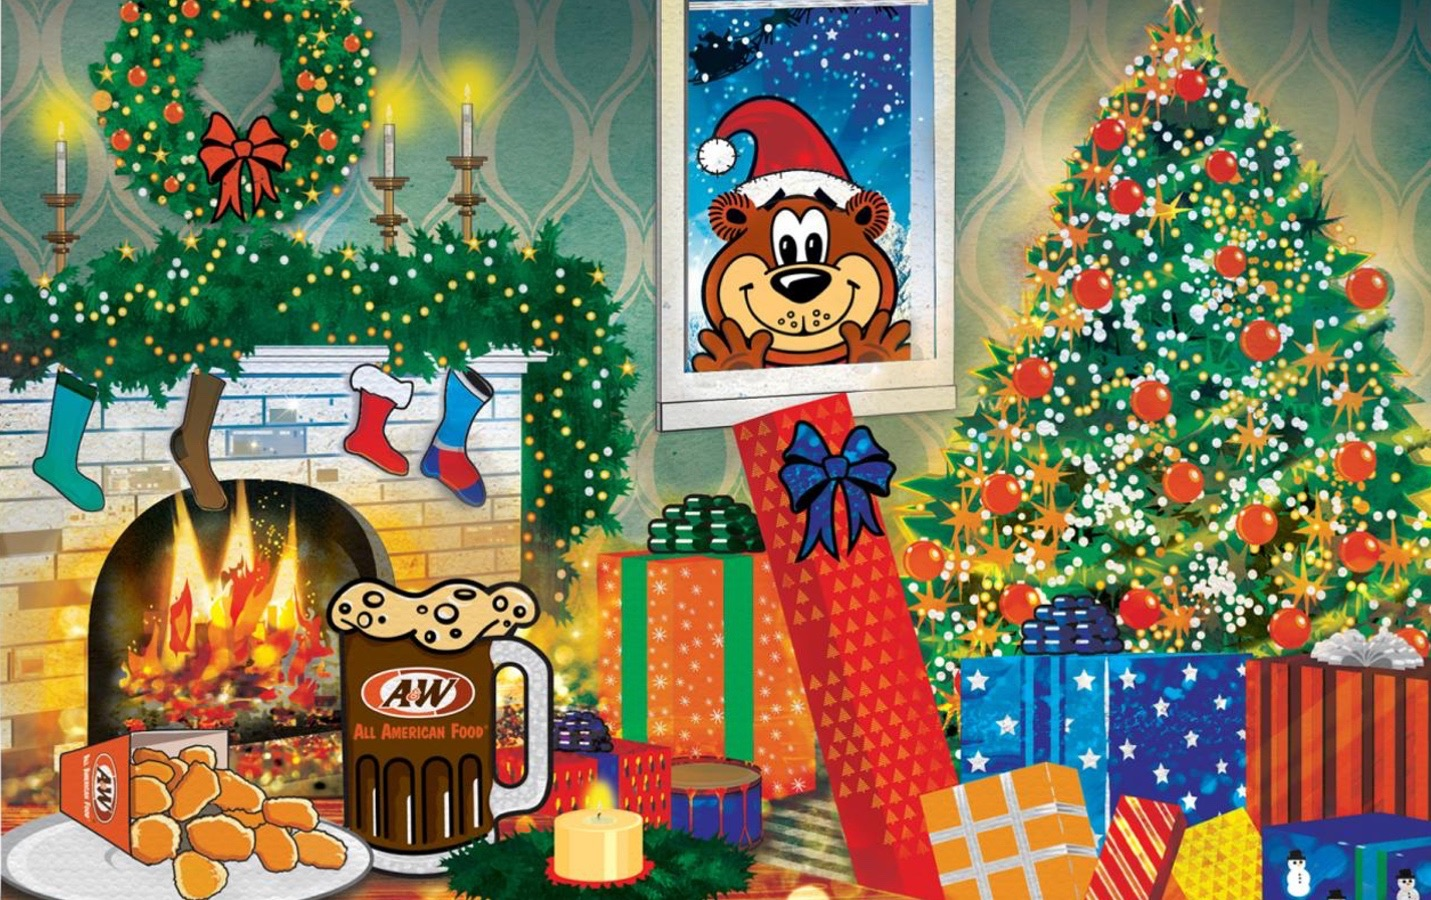 Rooty the Great Root Bear wearing a Santa hat, looking in house with Christmas tree, fireplace, presents, Root Beer, and Cheese Curds